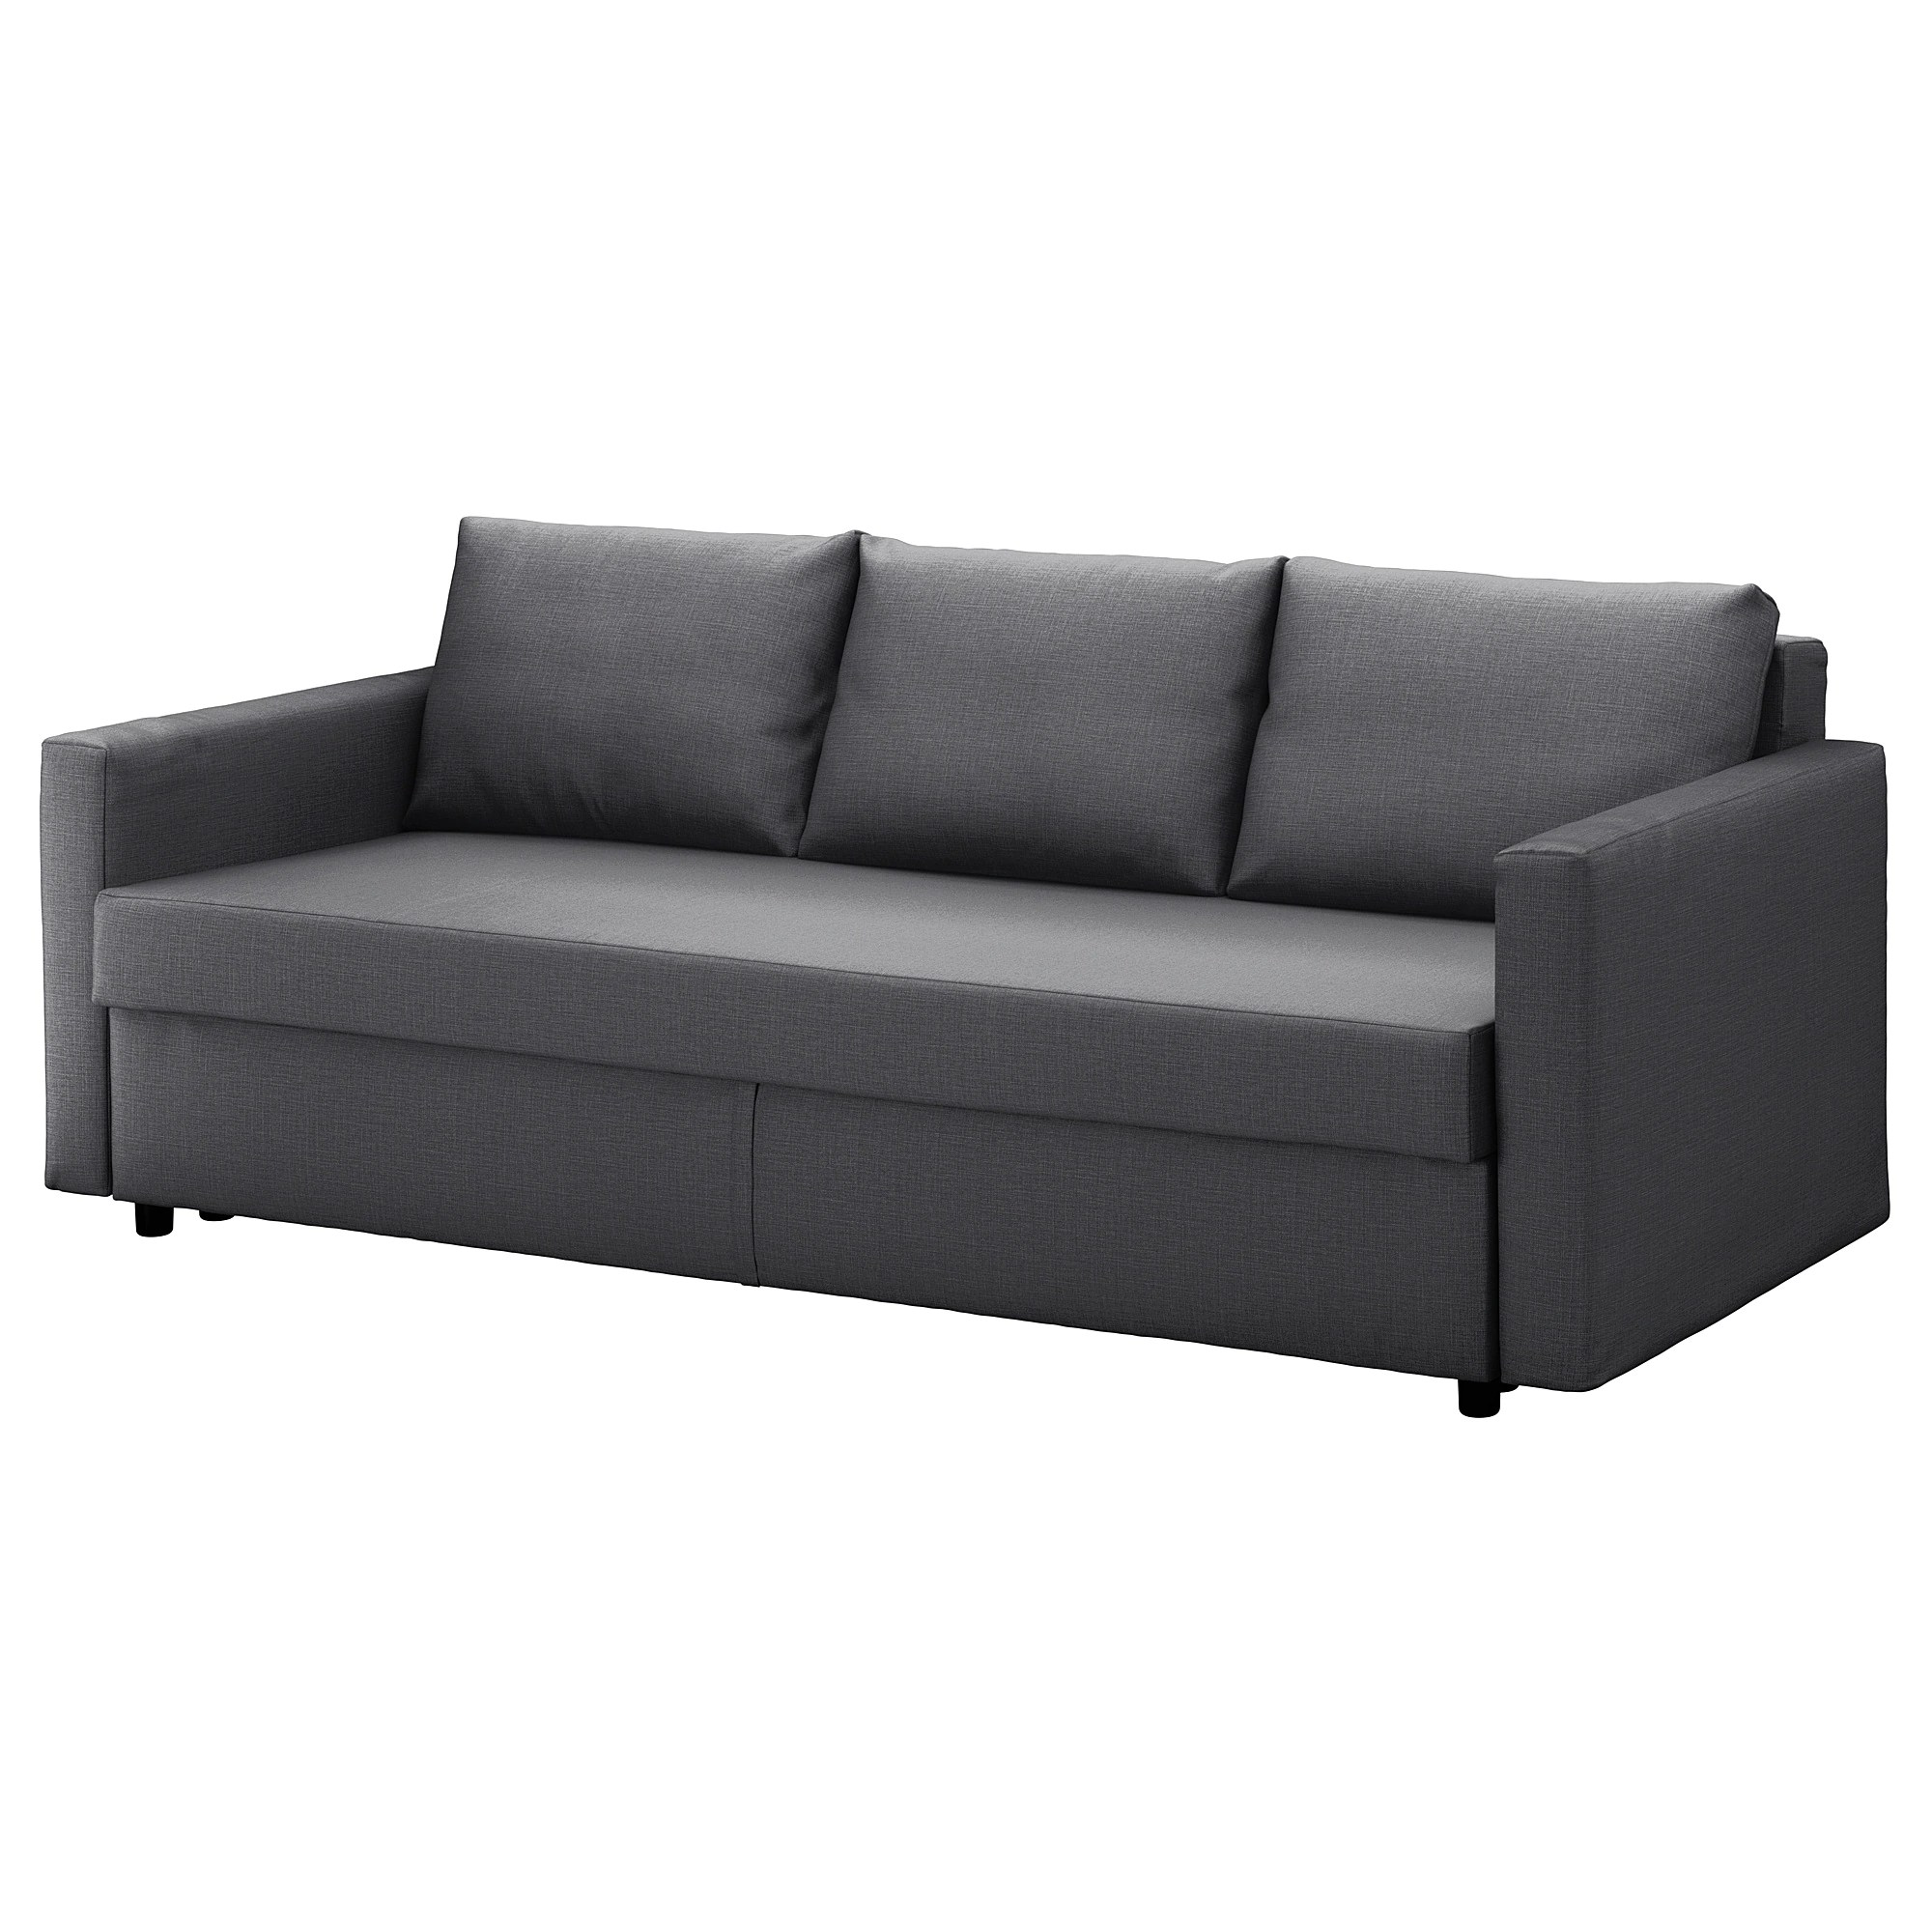 Couches In Ikea Sleeper Sofa Friheten Skiftebo Dark Gray